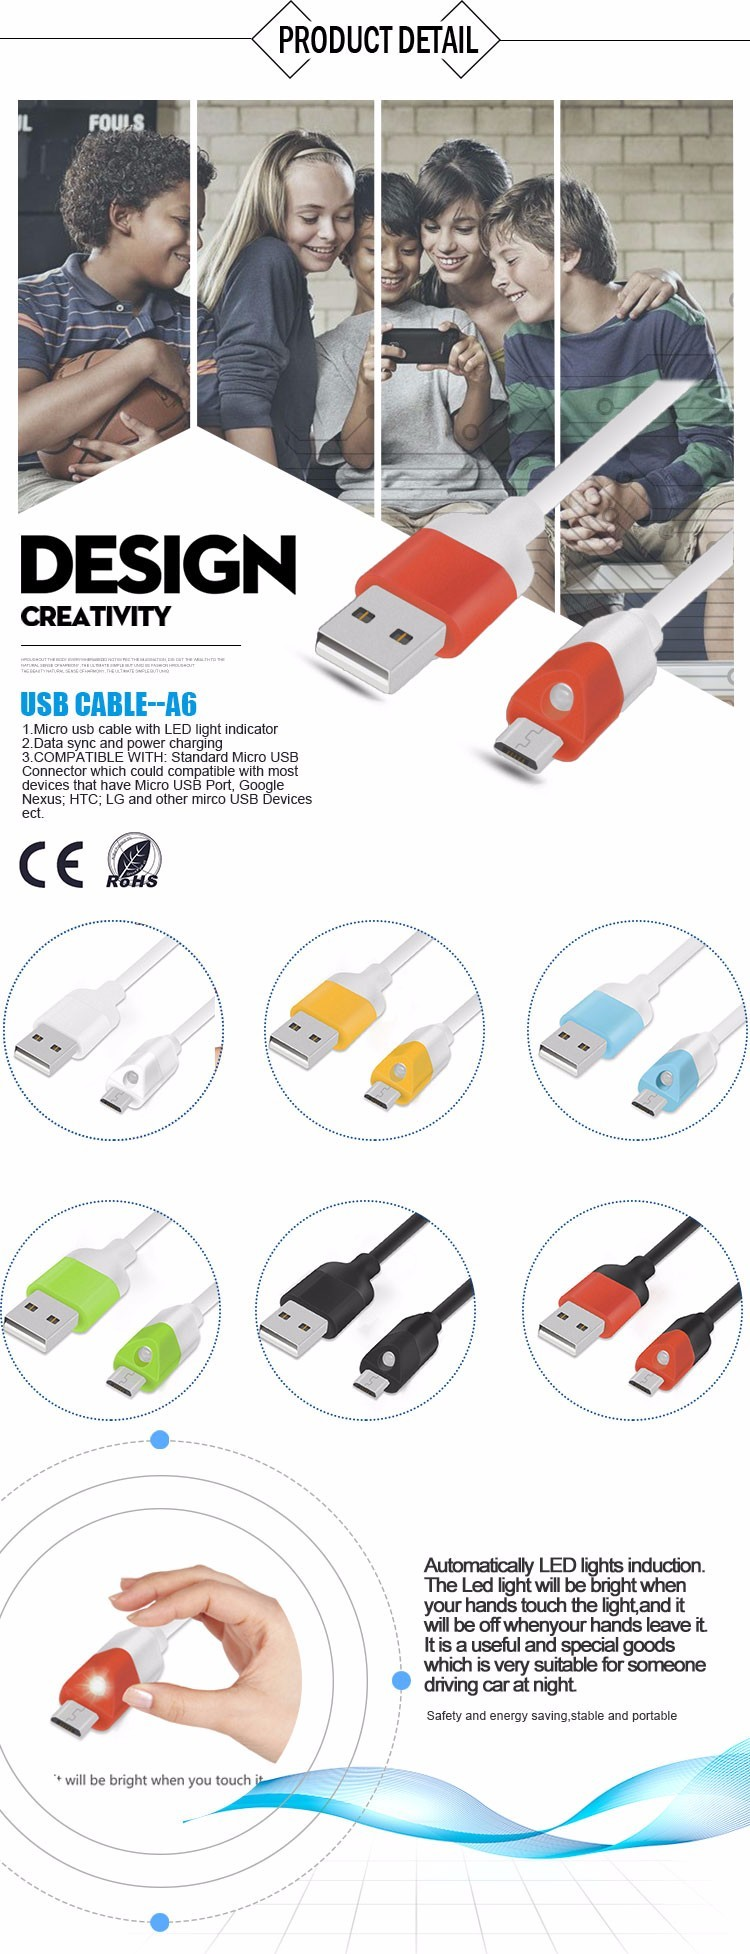 USB cable factory